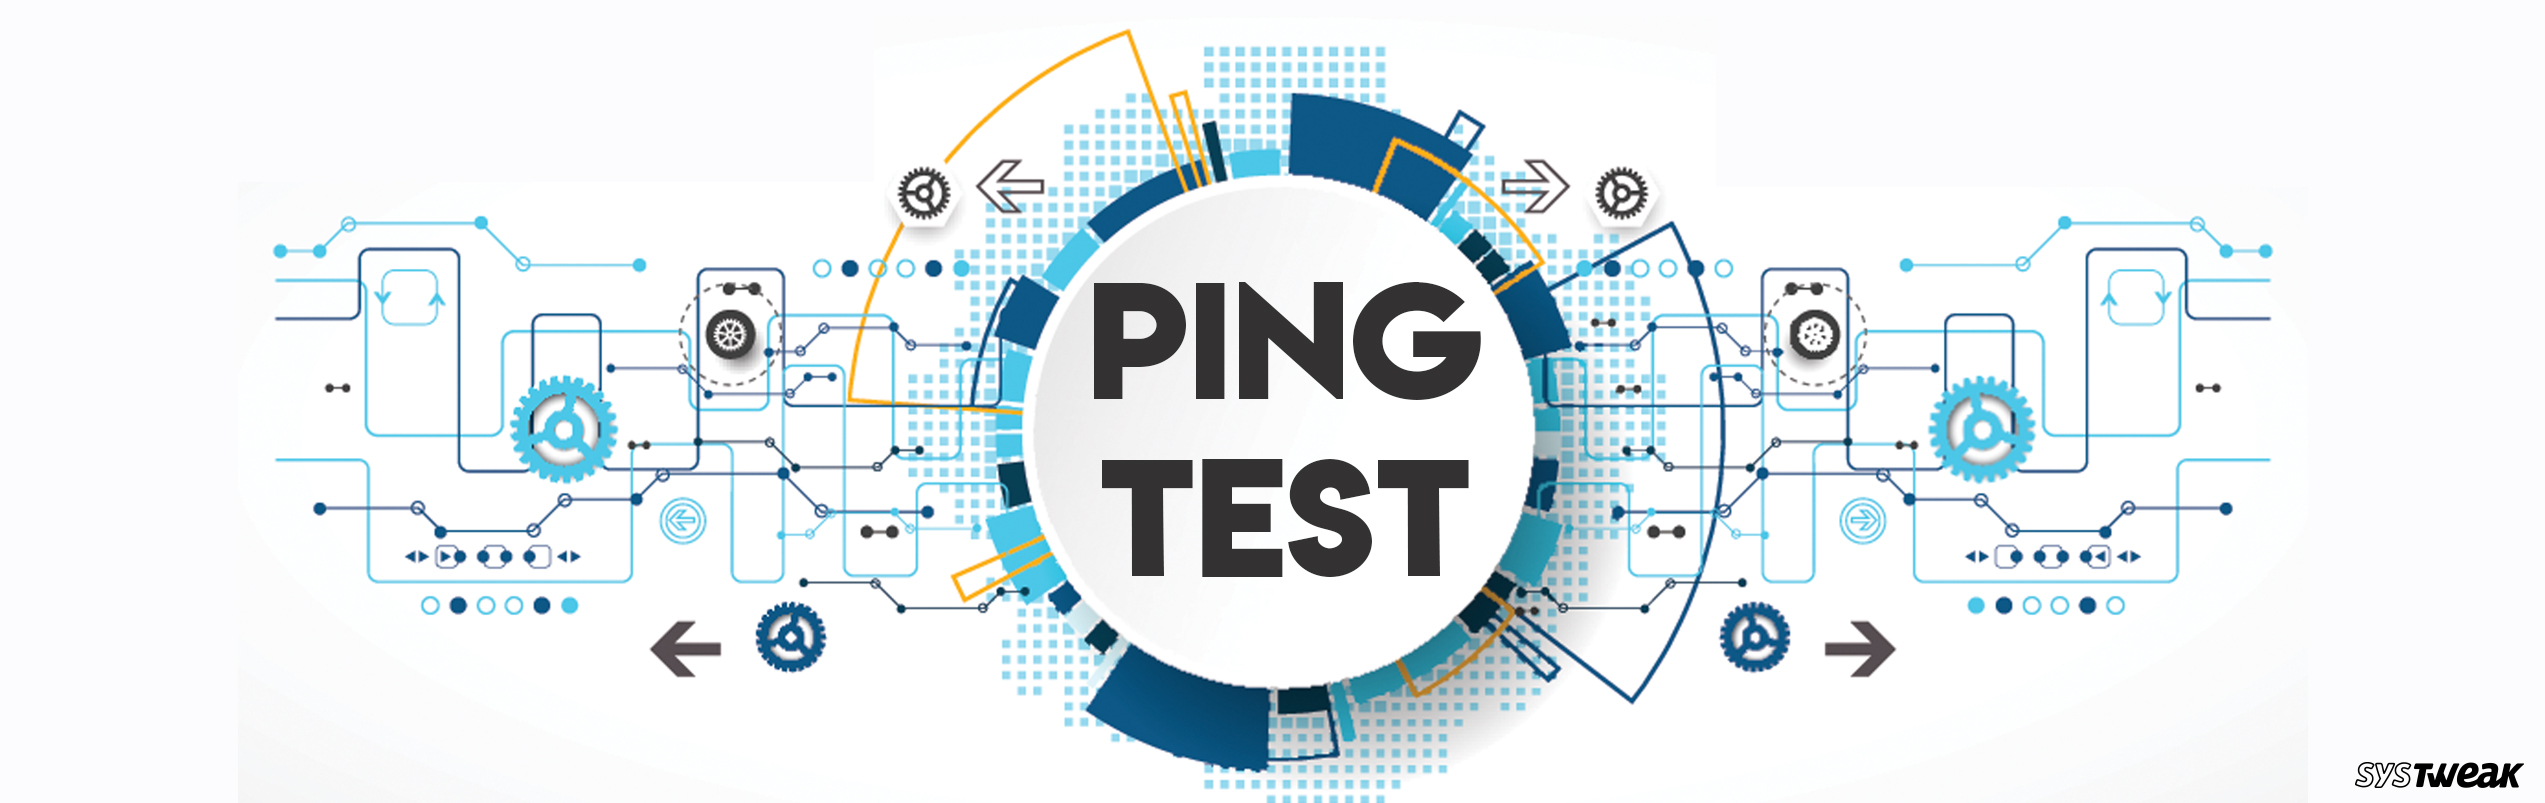 Ping: An Easy Way to Test IP Connection